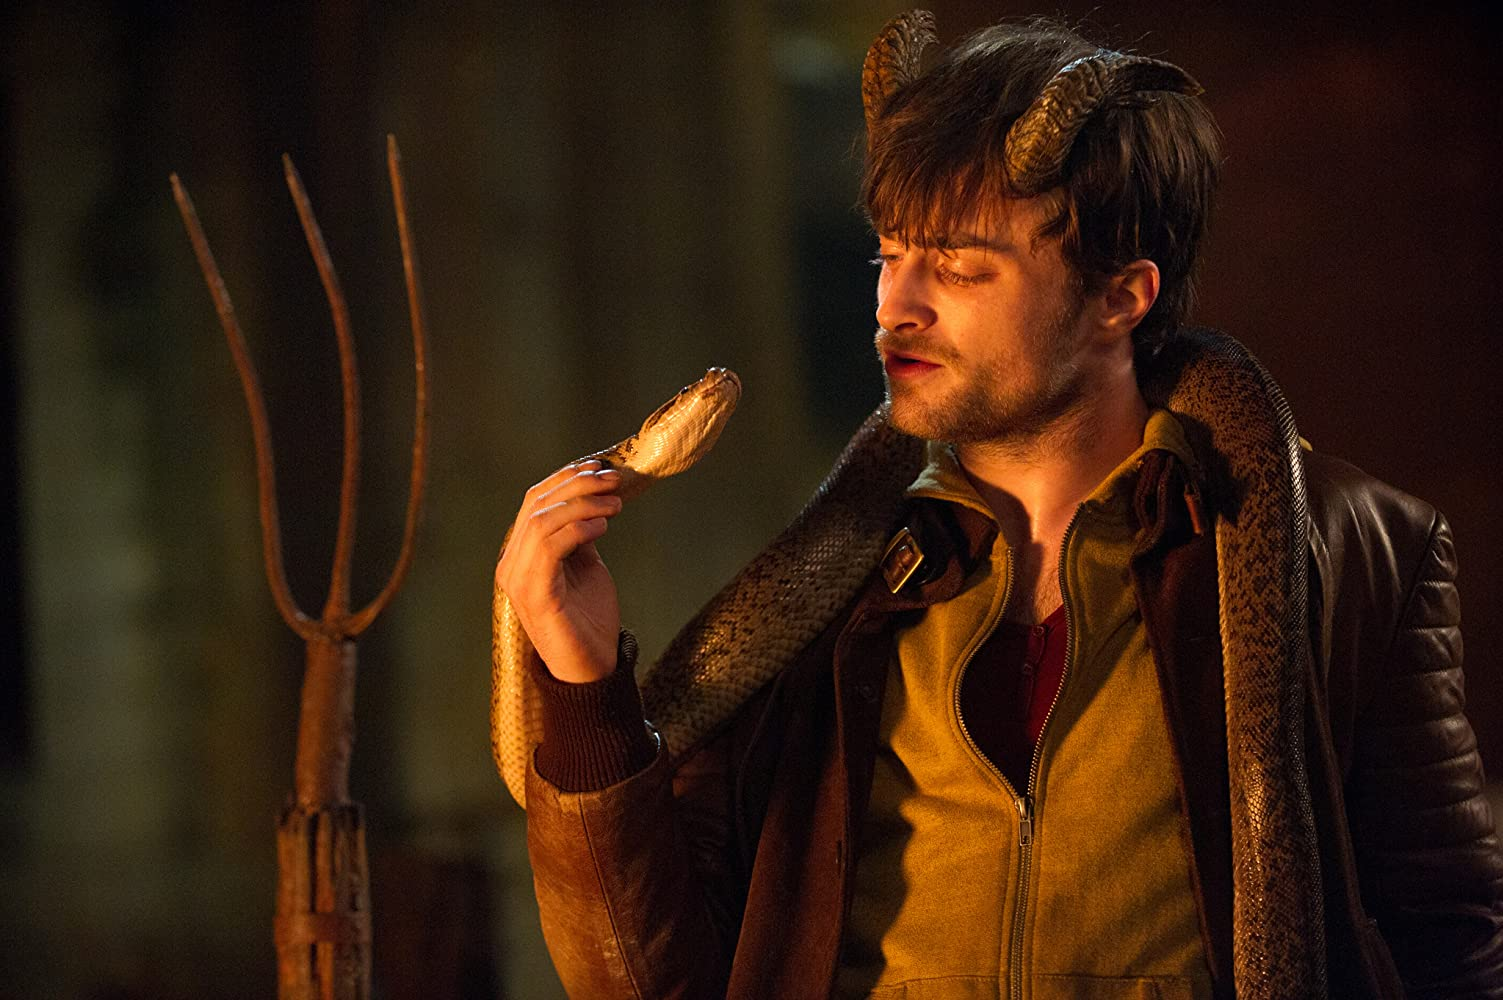 Daniel Radcliffe in Horns (2013)